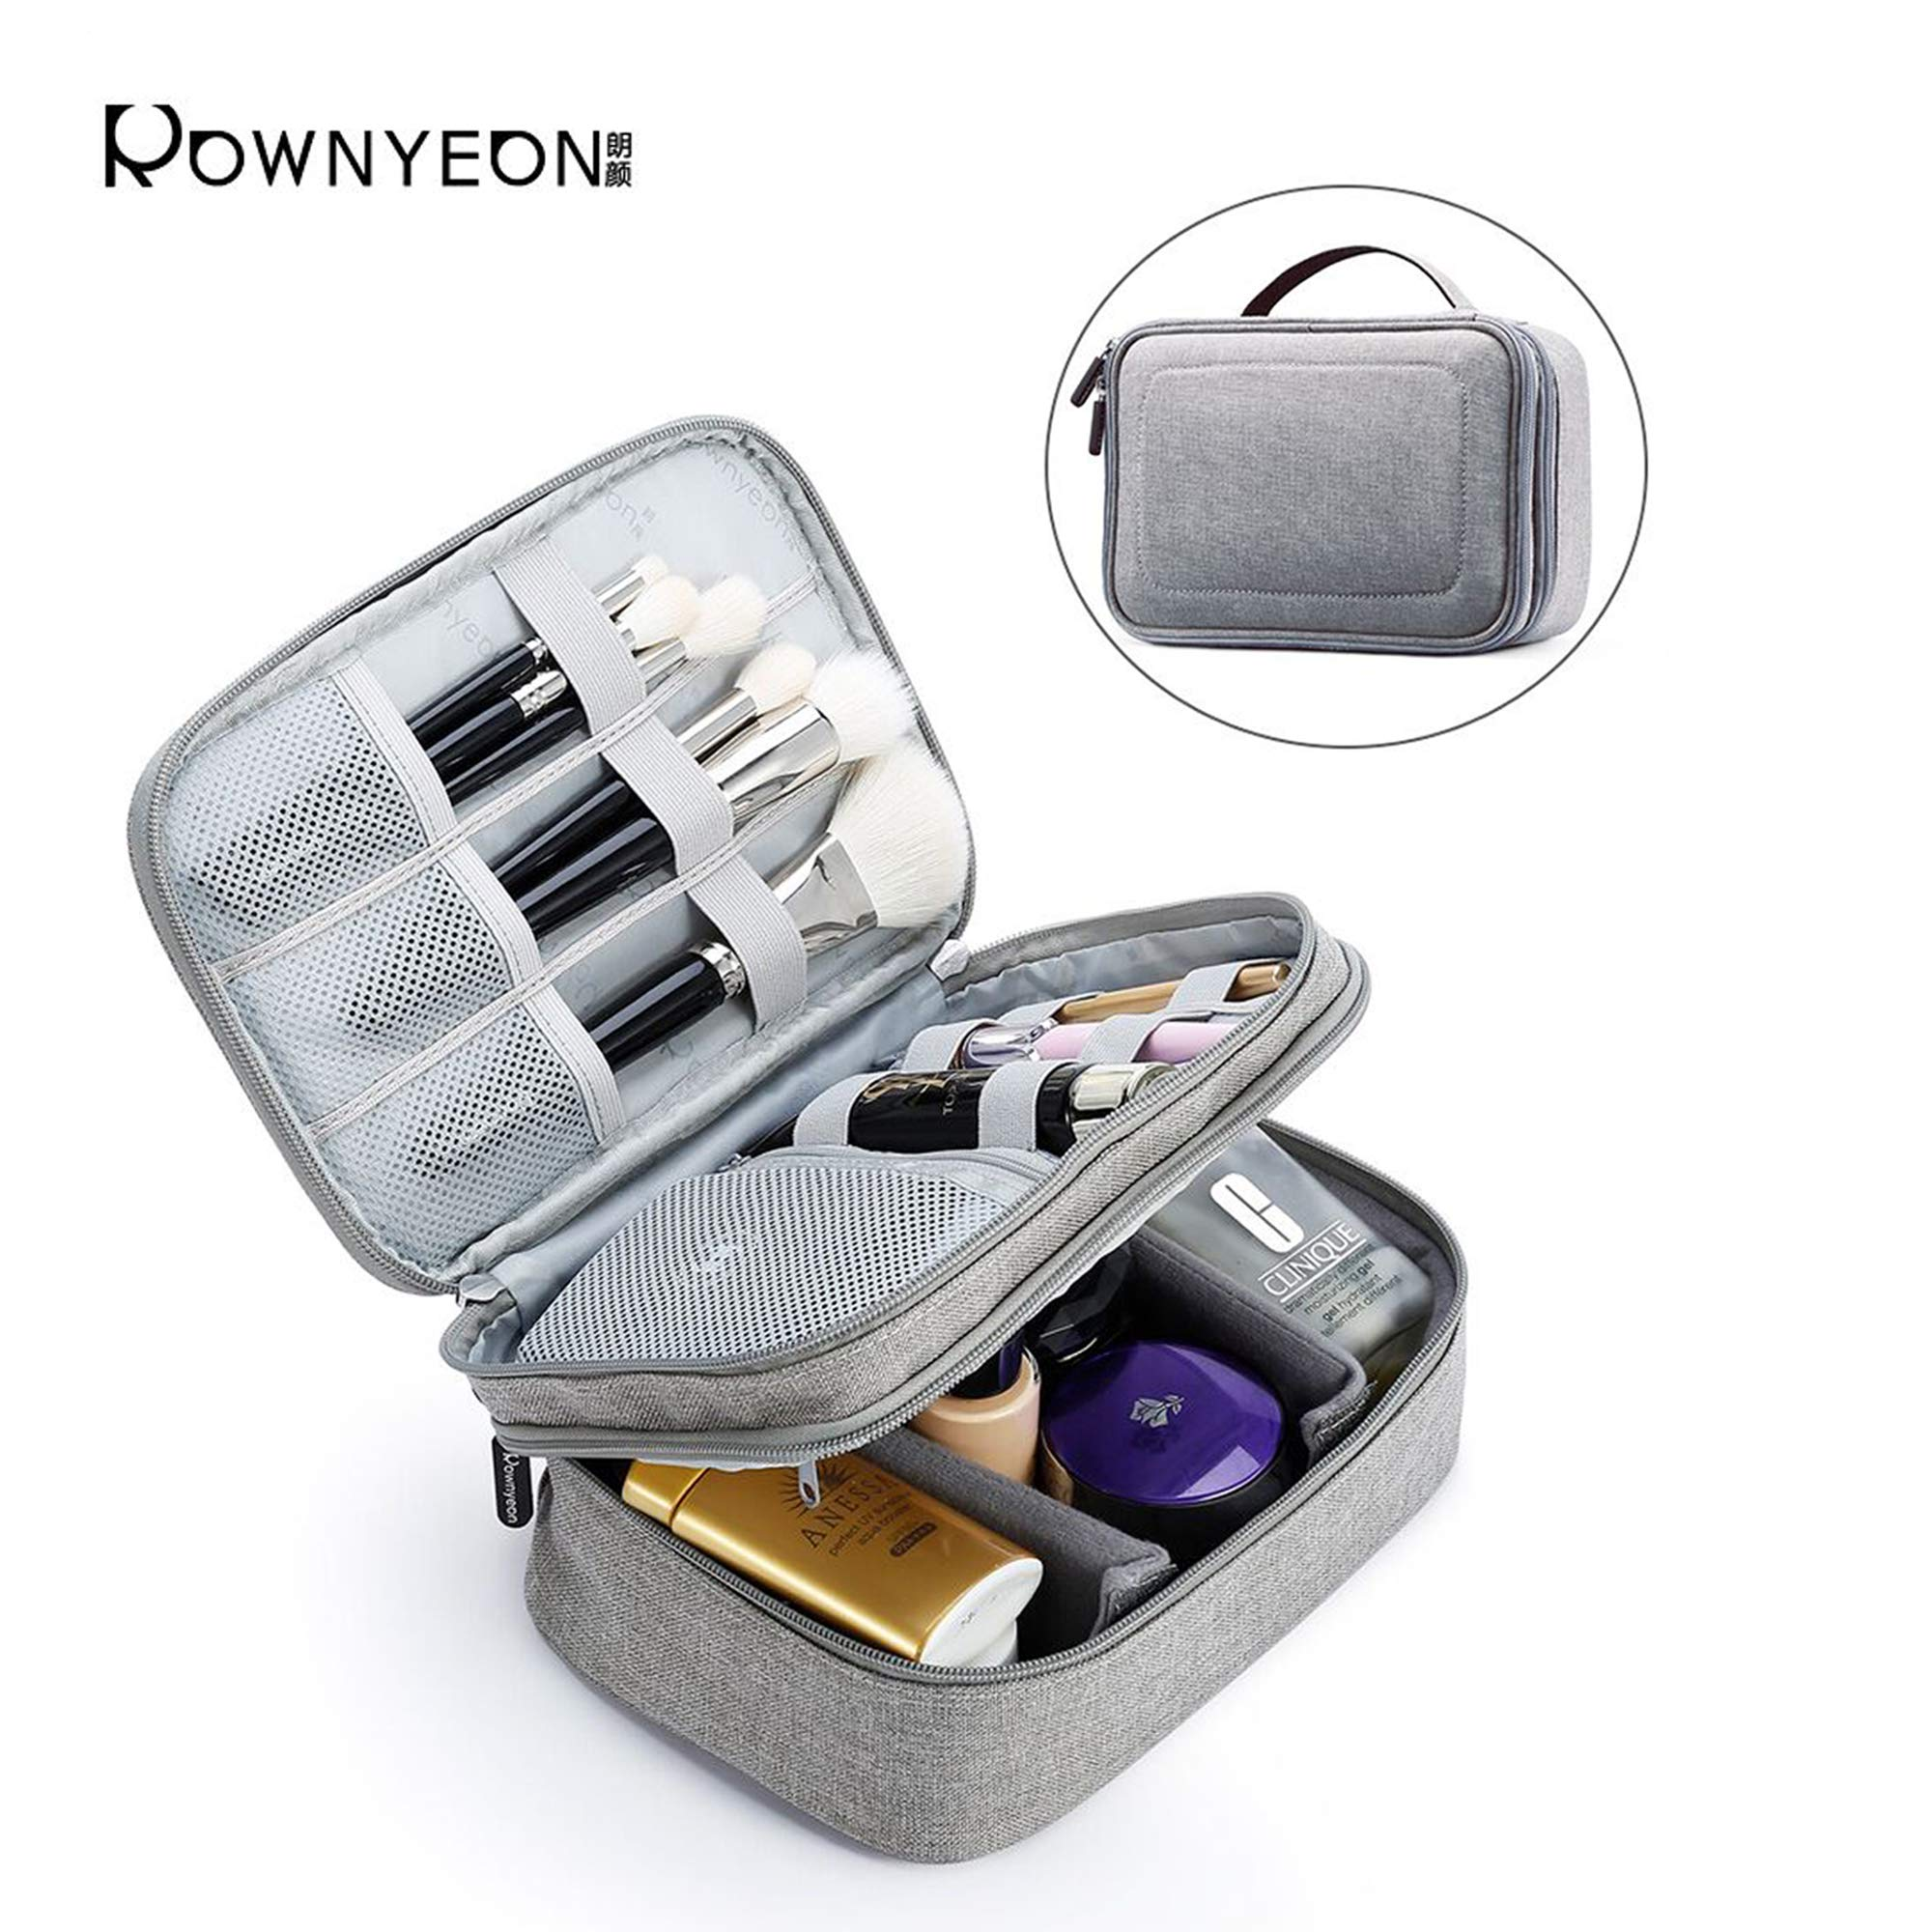 Rownyeon Travel Makeup Bag Waterproof Portable Cosmetic Cases Organizer Mini Makeup Train Cases with Adjustable Dividers for Cosmetics Makeup Brushes Toiletry Jewelry Digital